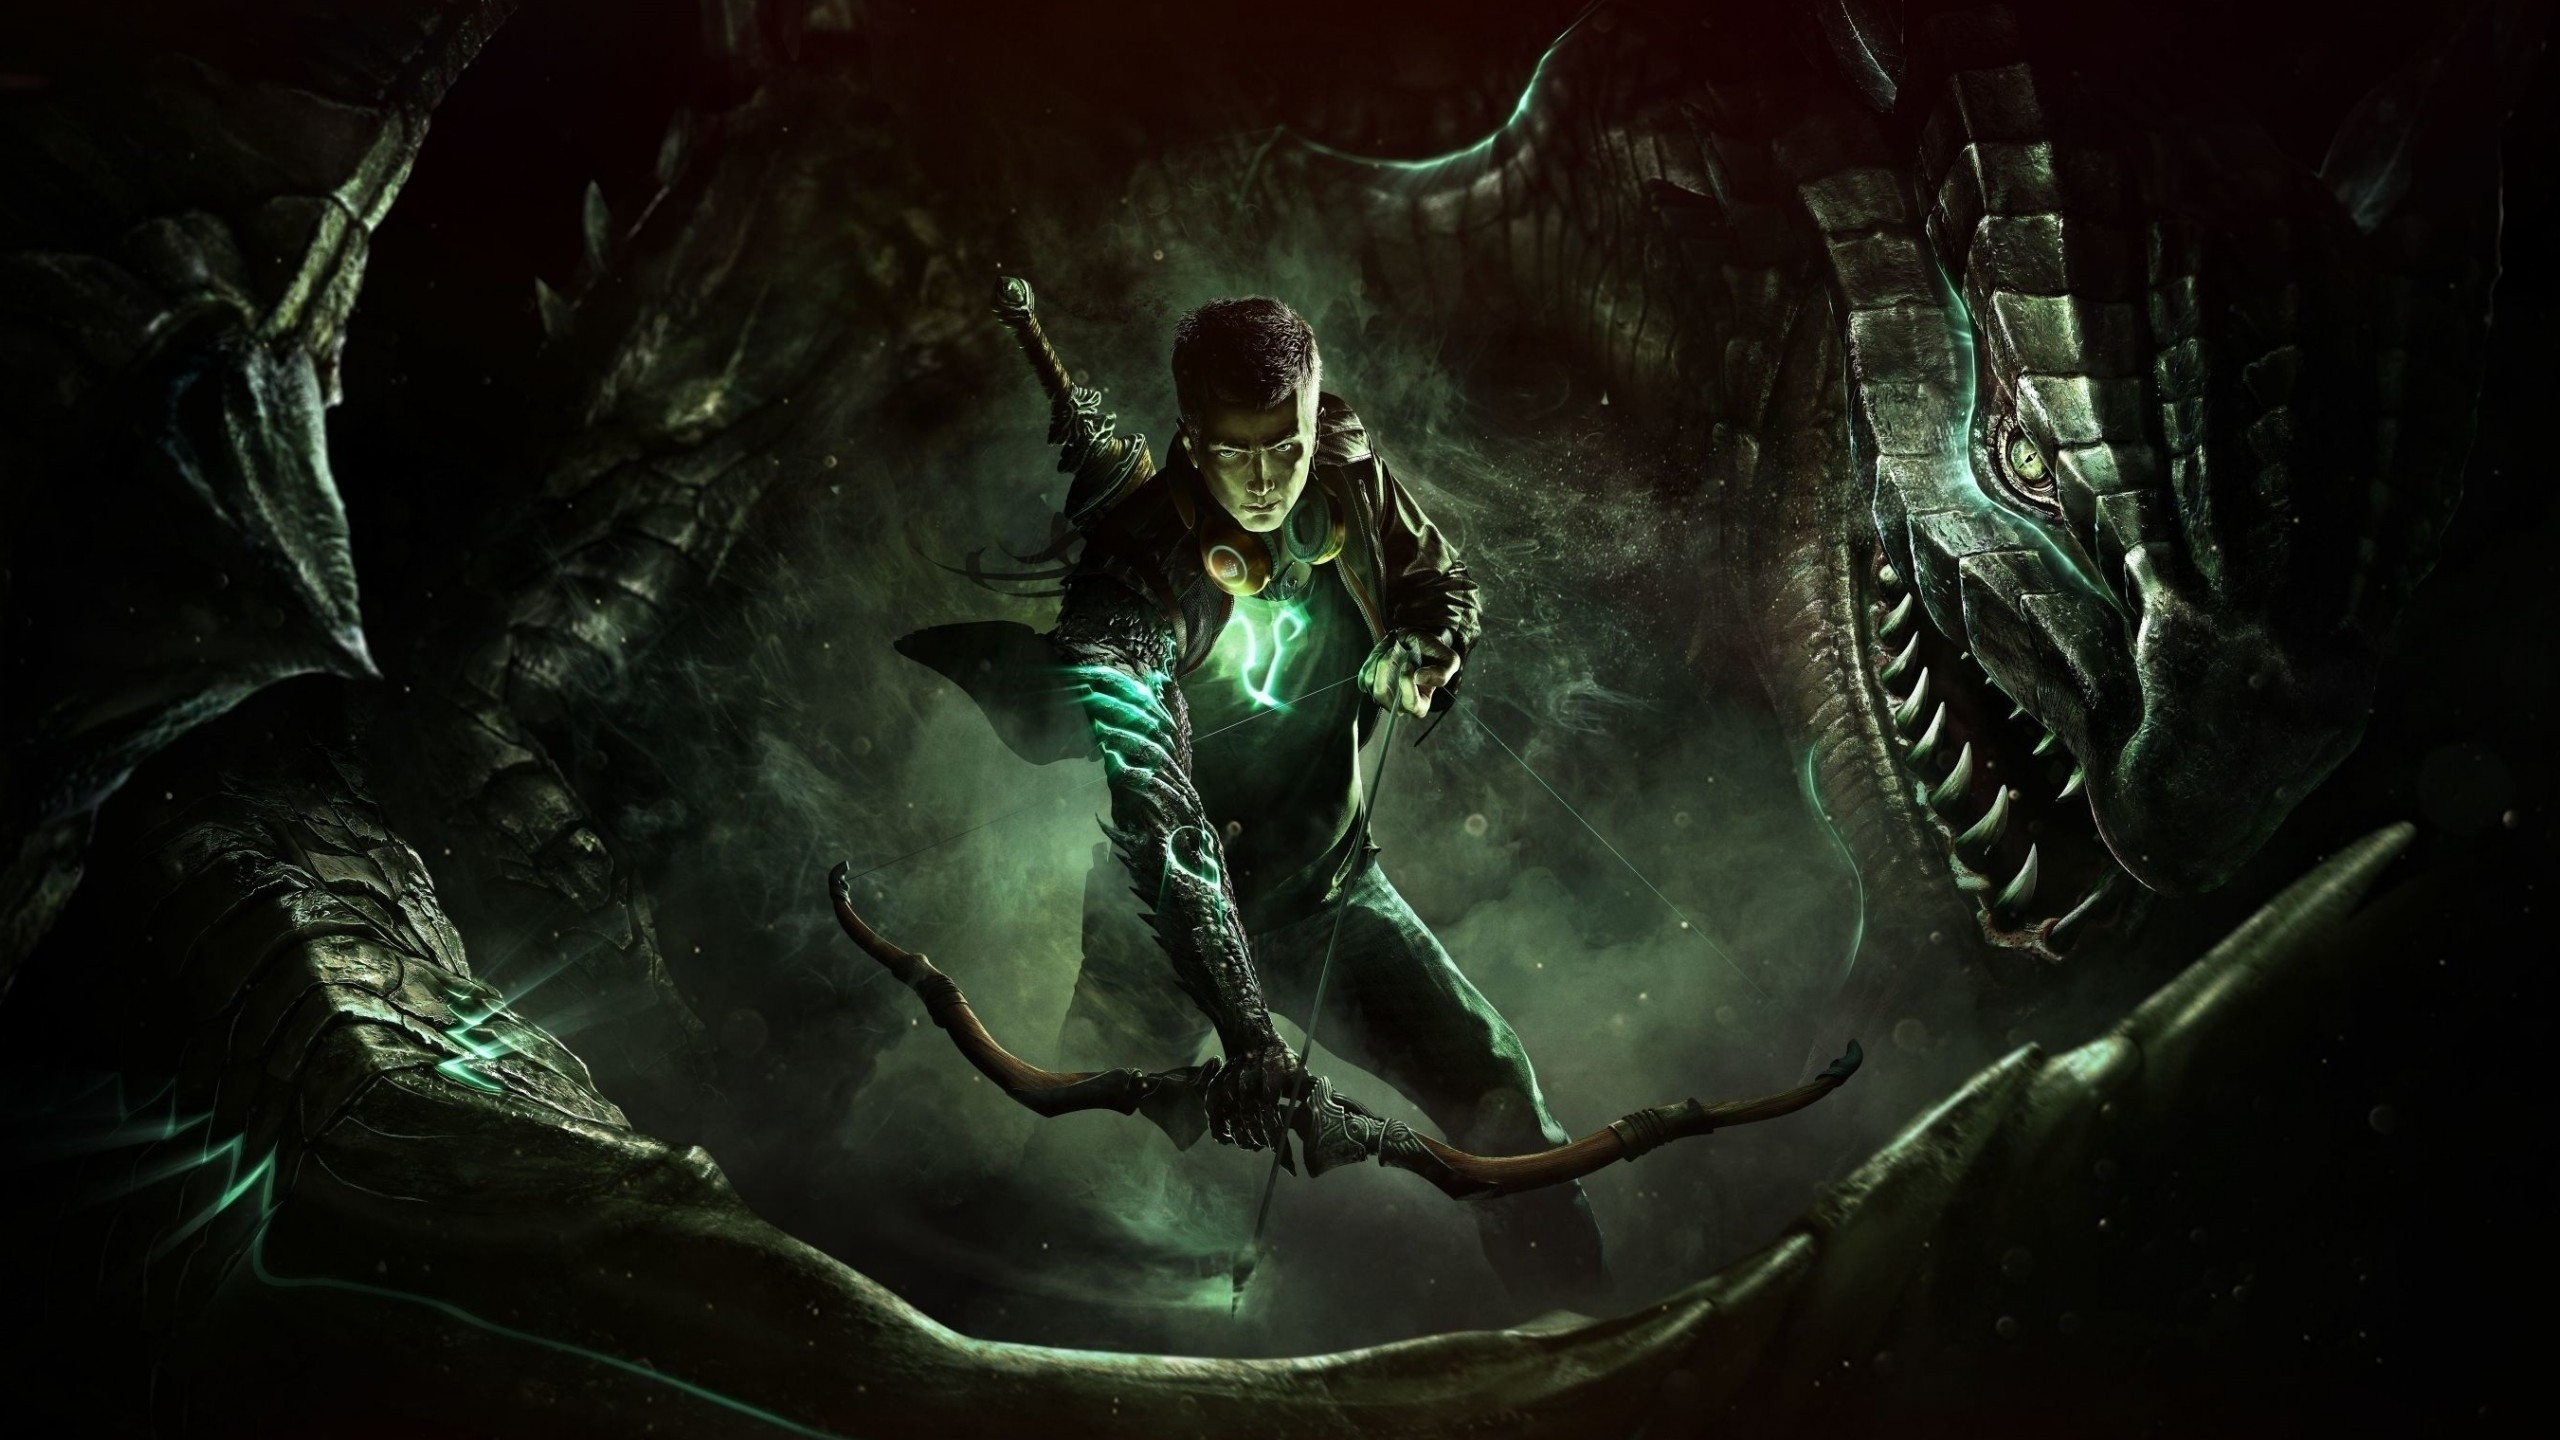 2560x1440  Wallpaper scalebound, character, platinum games